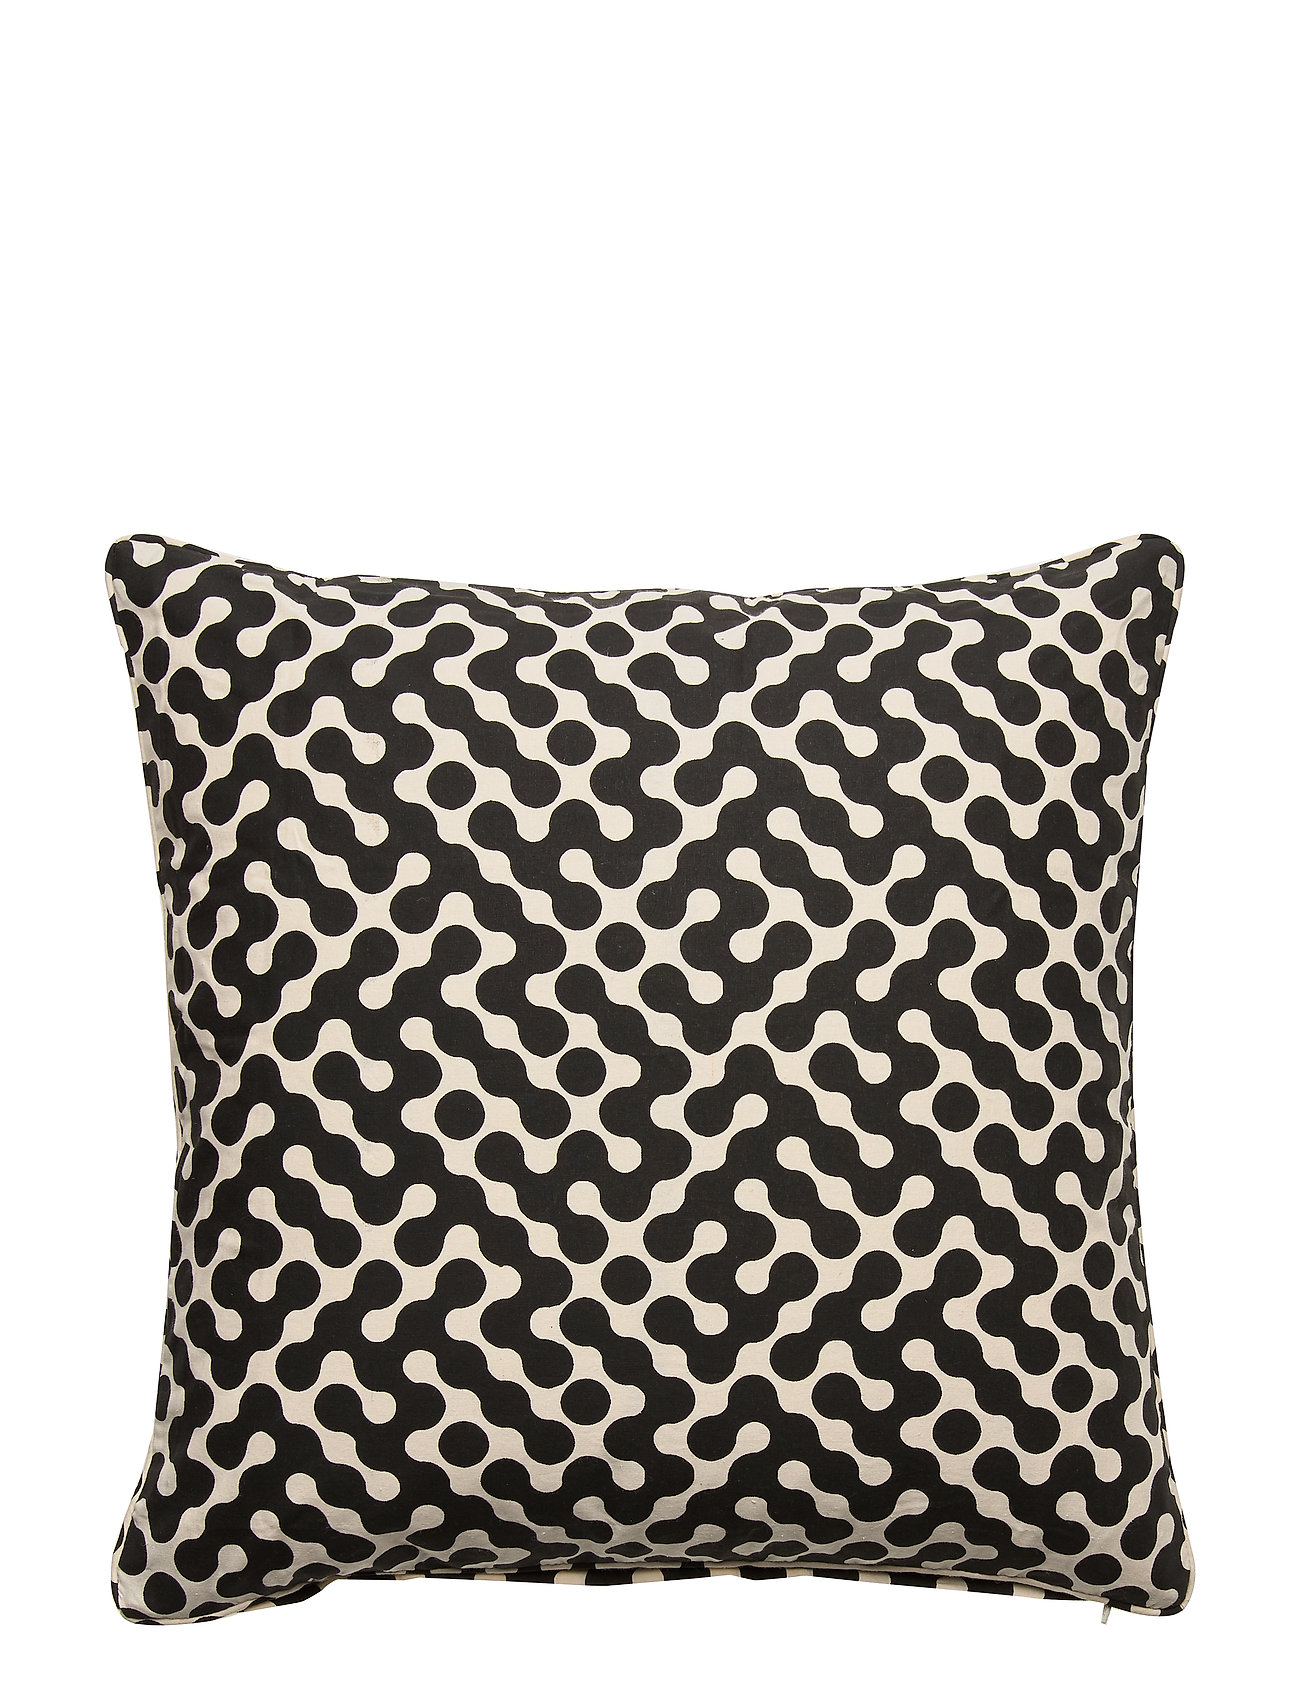 DAY Home Day Blob Cushion Cover - BLACK/WHITE